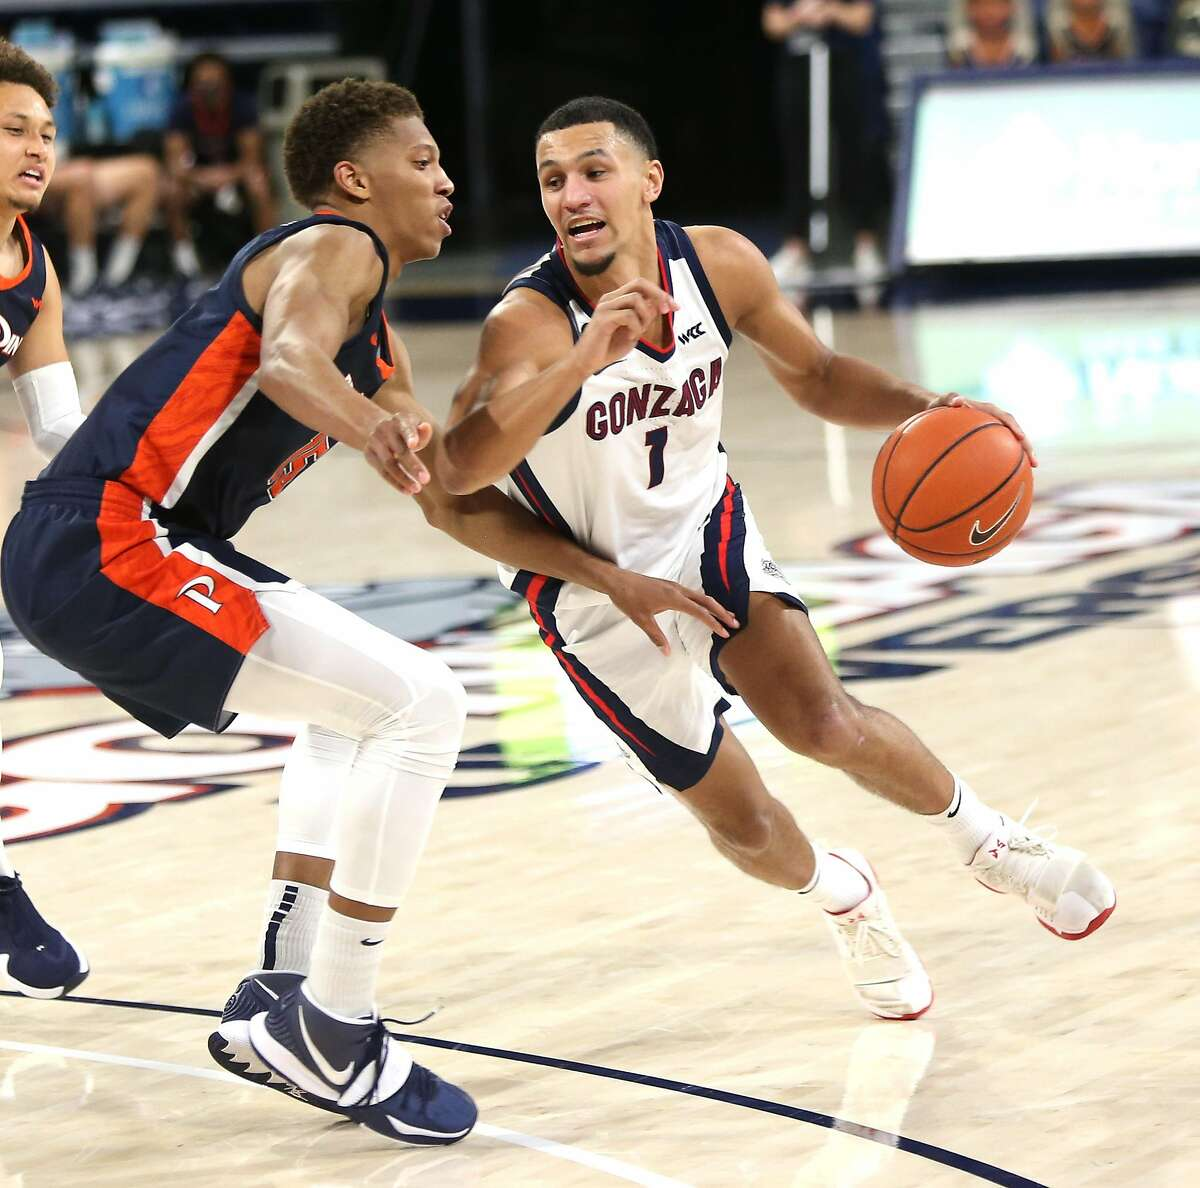 SPOKANE, WASHINGTON - JANUARY 14: Jalen Suggs #1 of the Gonzaga Bulldogs drives against Kessler Edwards #15 of the Pepperdine Waves in the second half at McCarthey Athletic Center on January 14, 2021 in Spokane, Washington. Gonzaga defeats Pepperdine 95-70. (Photo by William Mancebo/Getty Images)